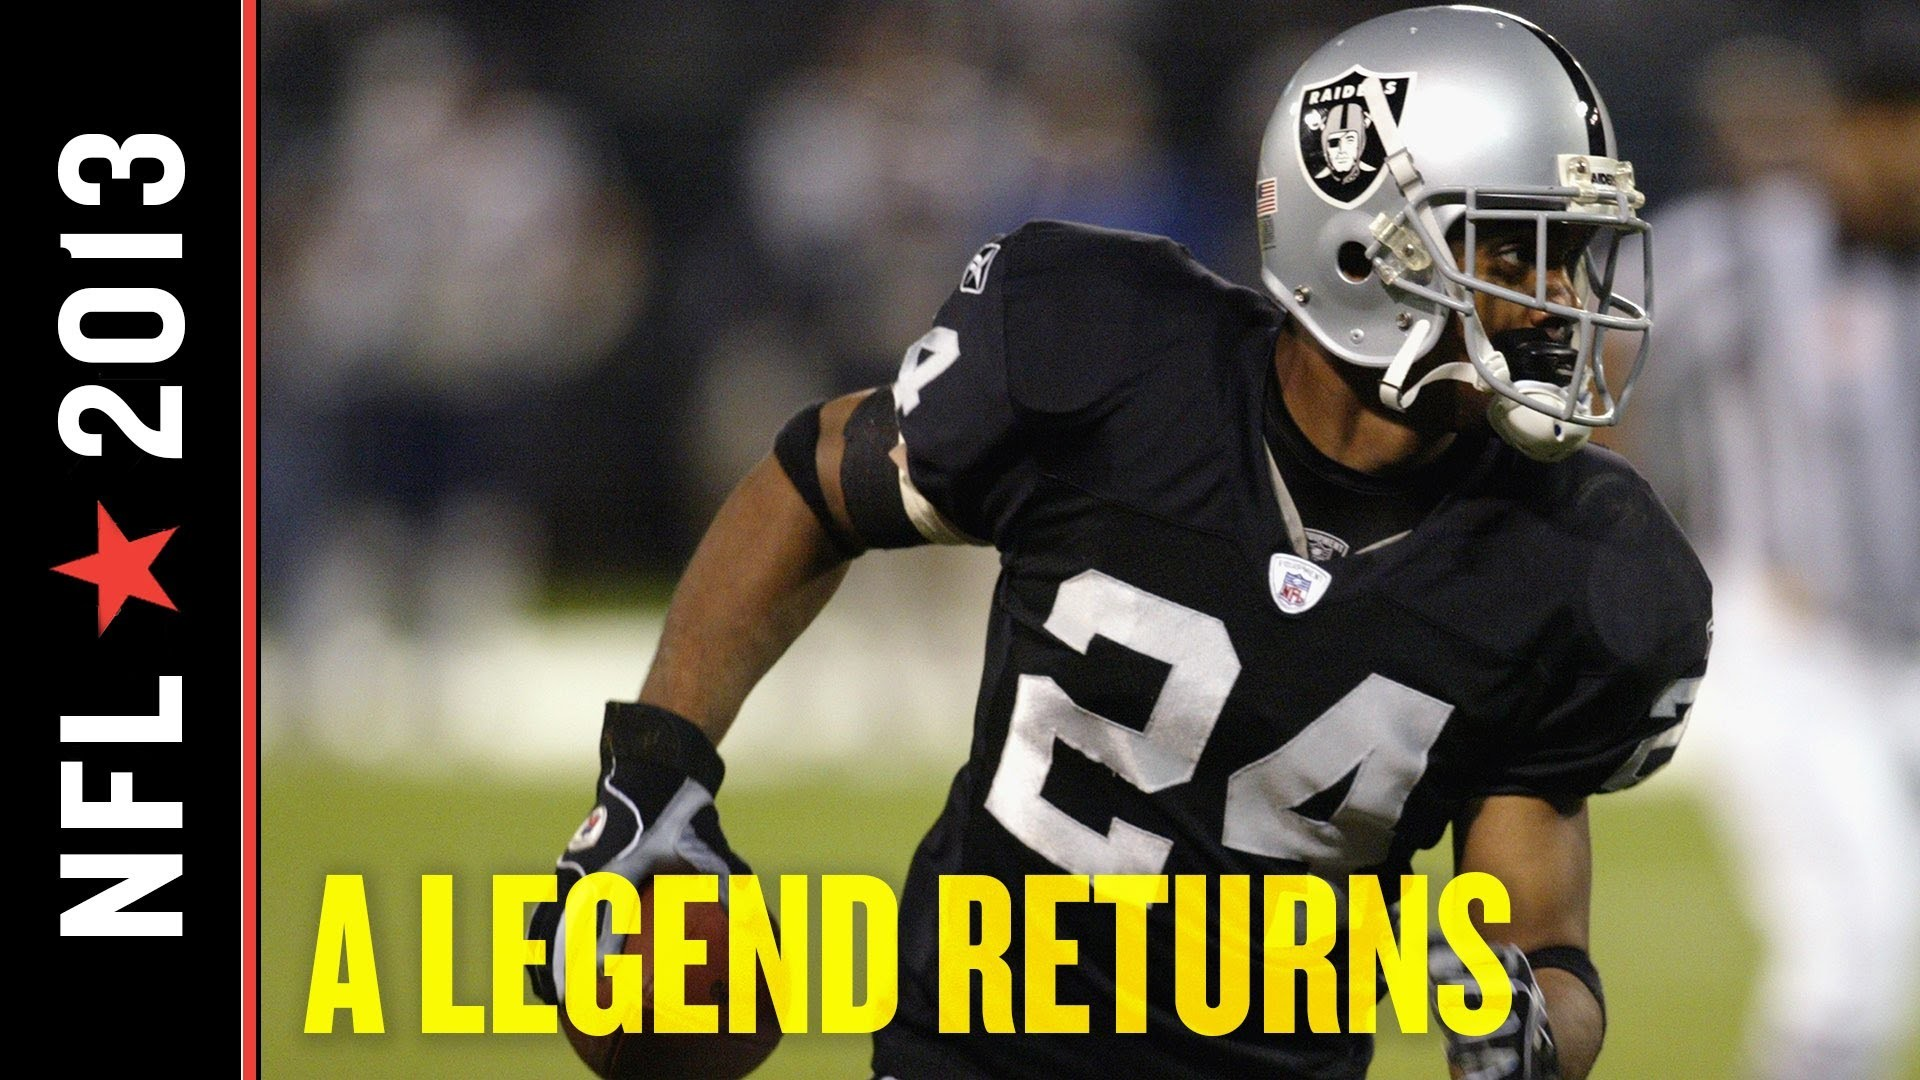 1920x1080 Charles Woodson Comes Full Circle, Signs Back with the Raiders - YouTube